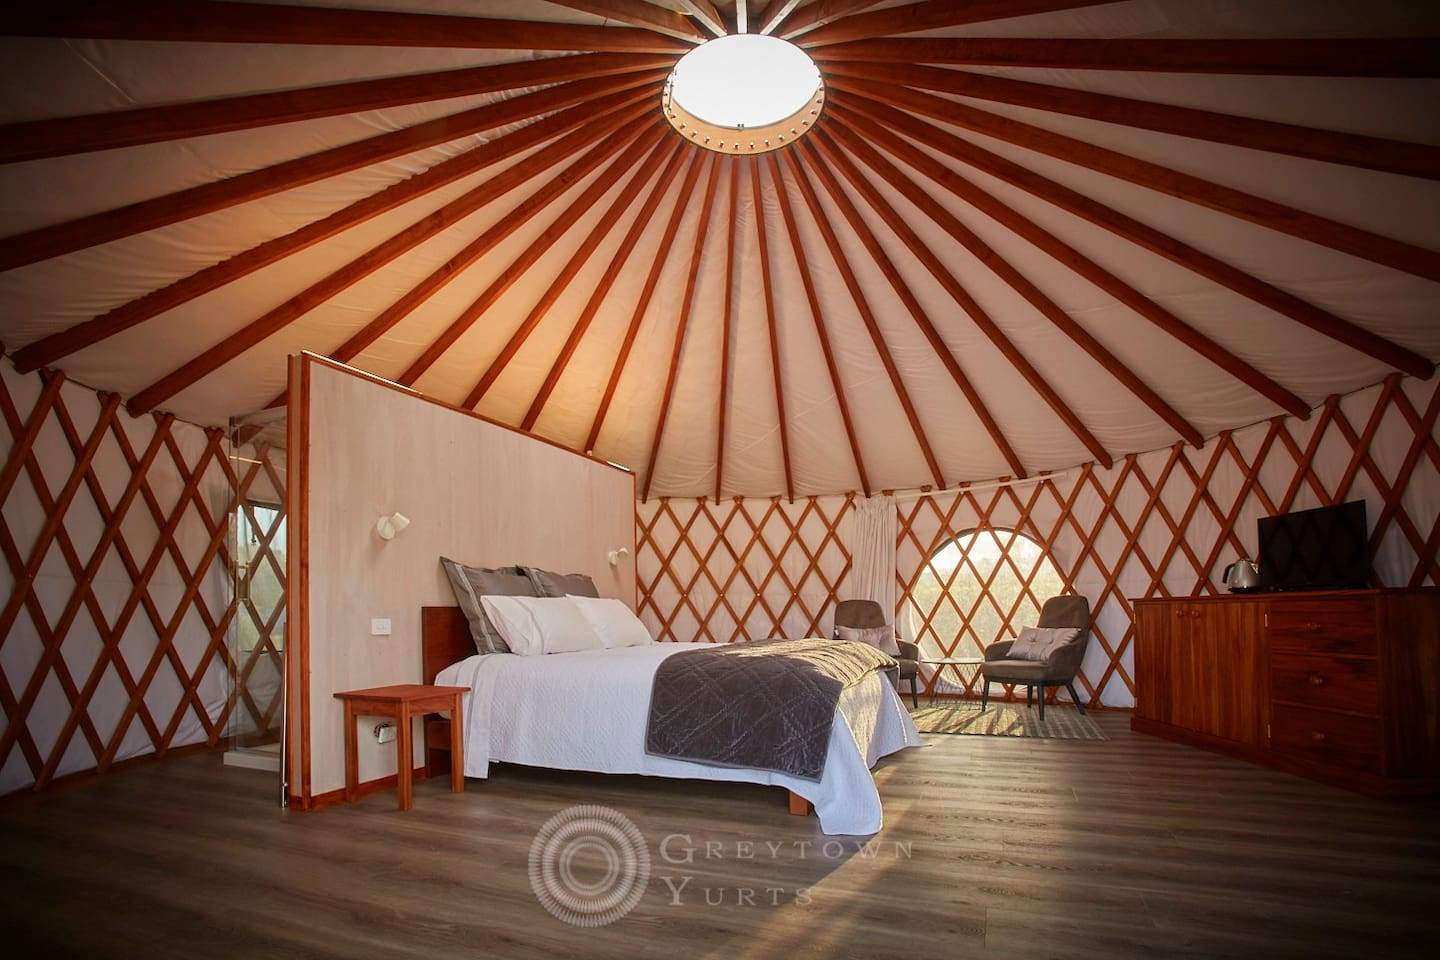 The gorgeous interior of your yurt